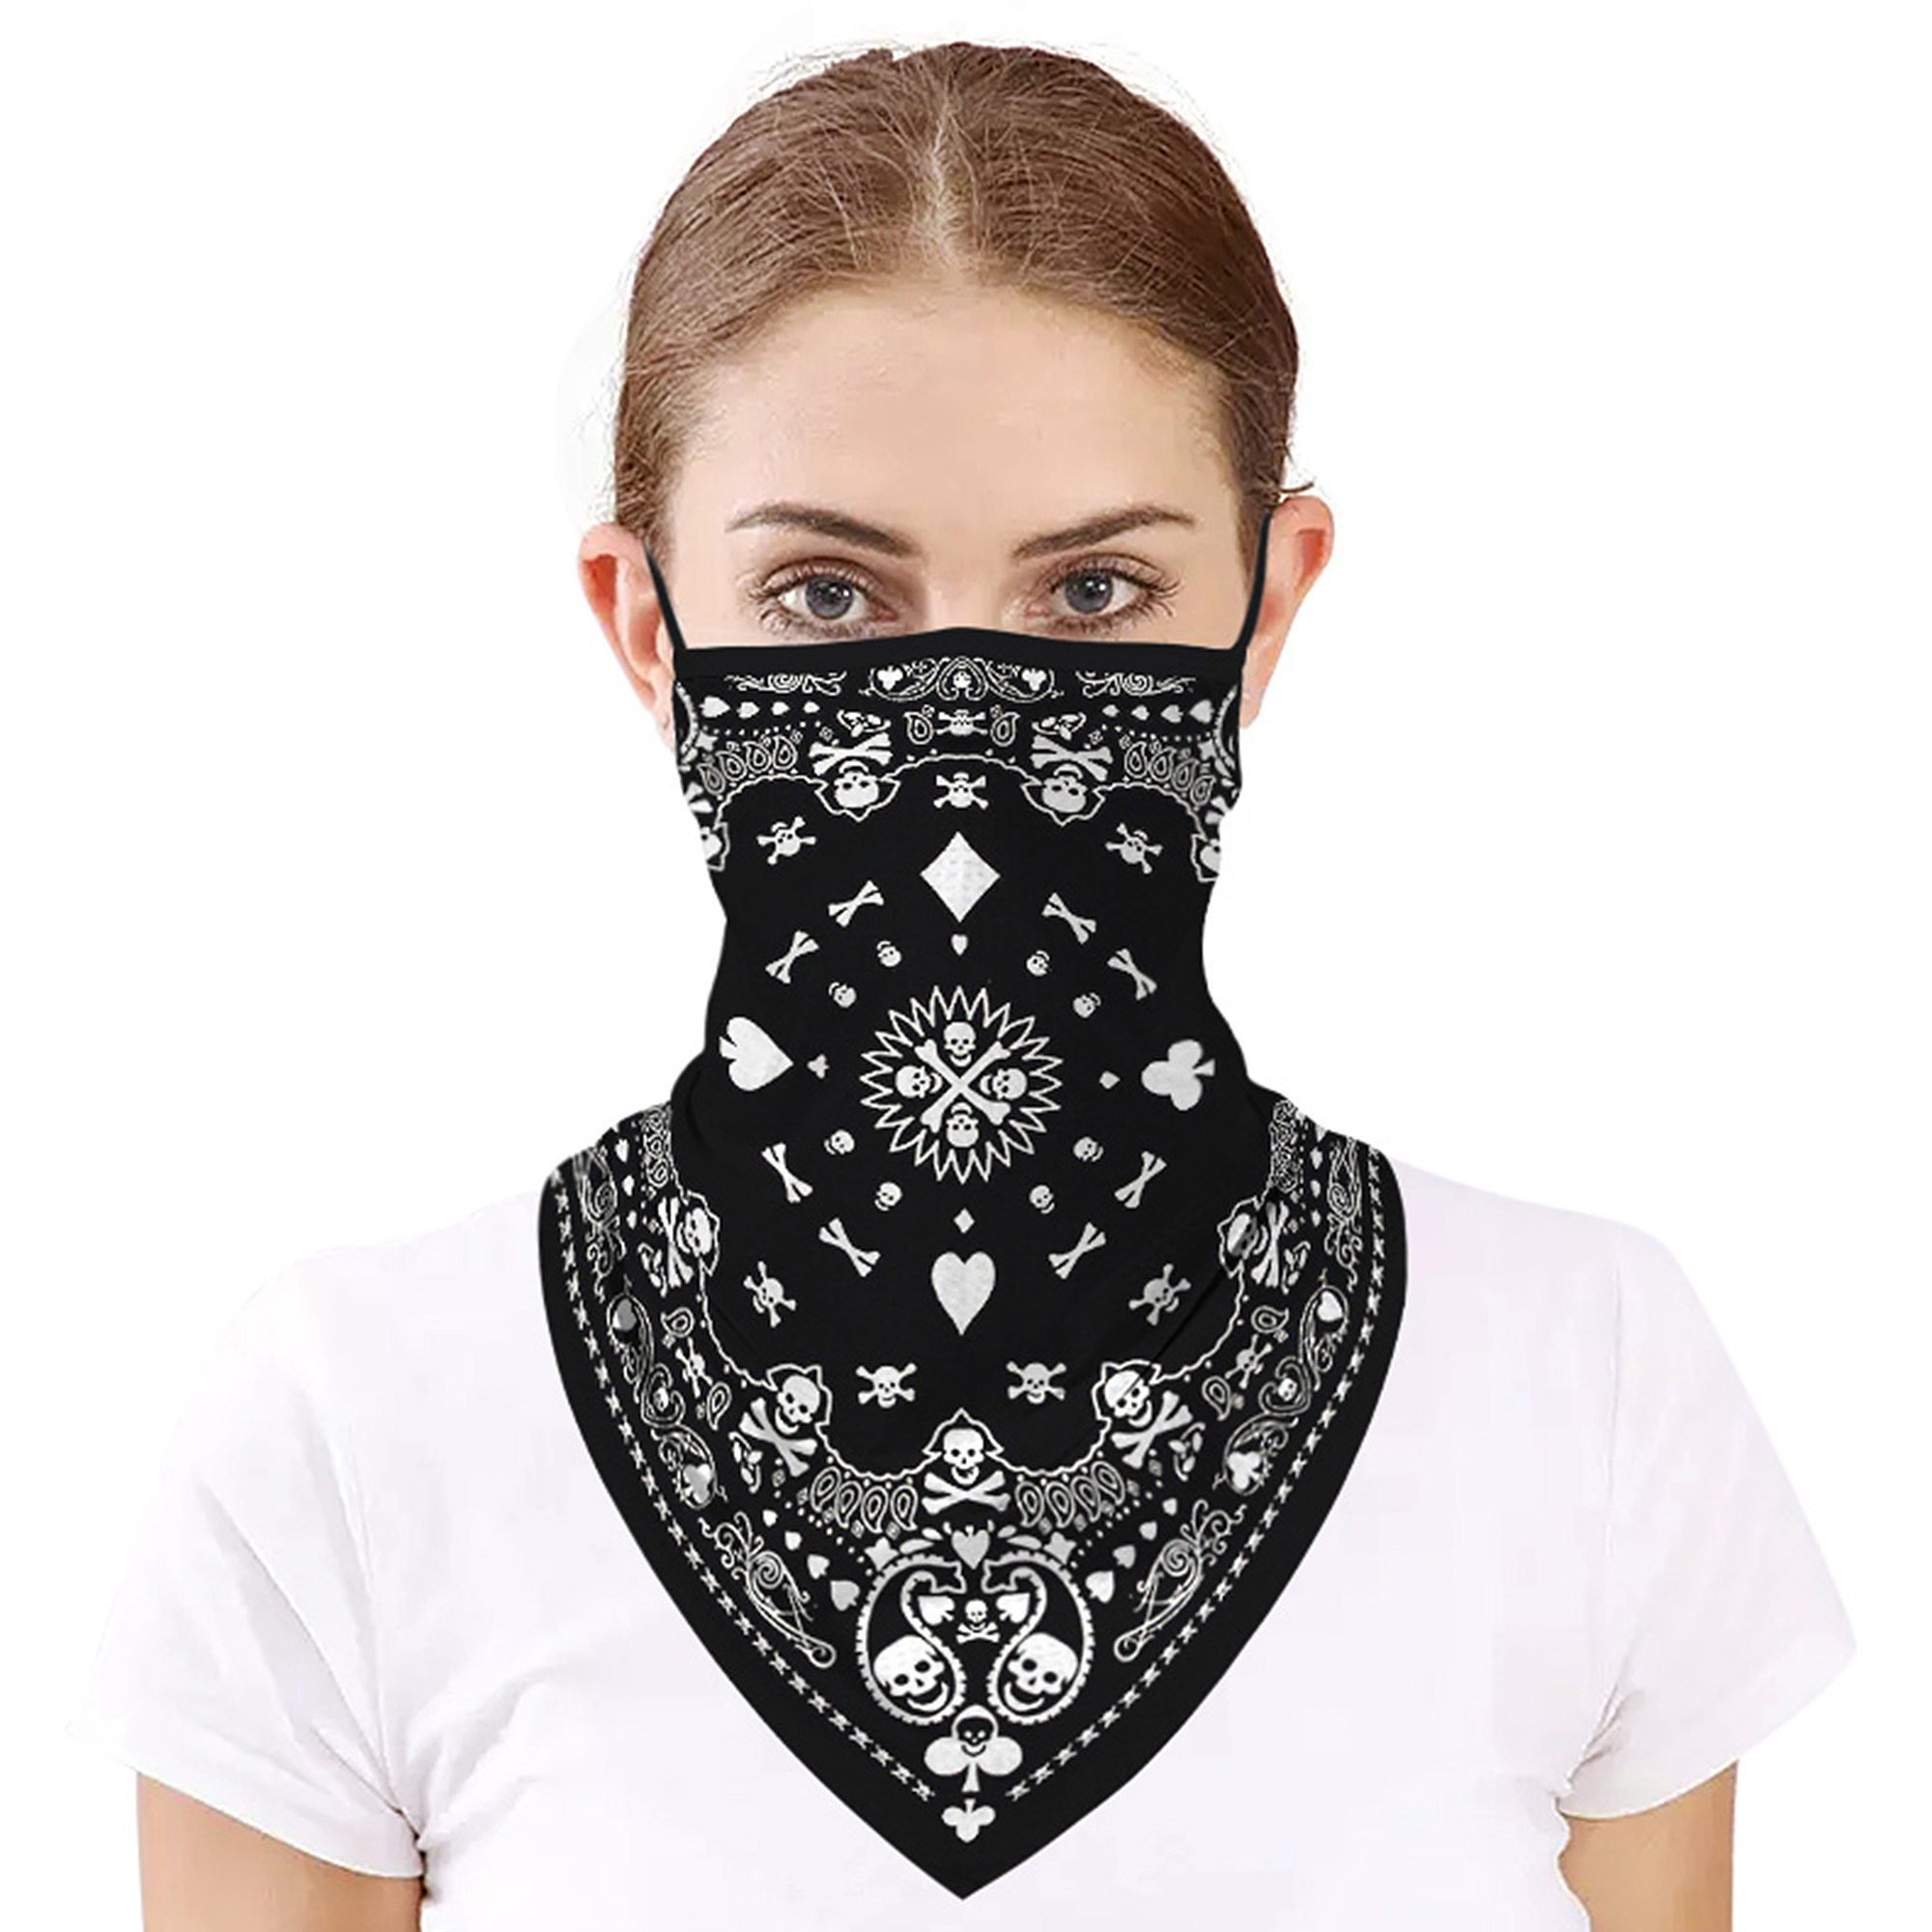 Motorcycle Face Mask Neck Cover Balaclava Cycling Bike Masks Ski Outdoor Bandana